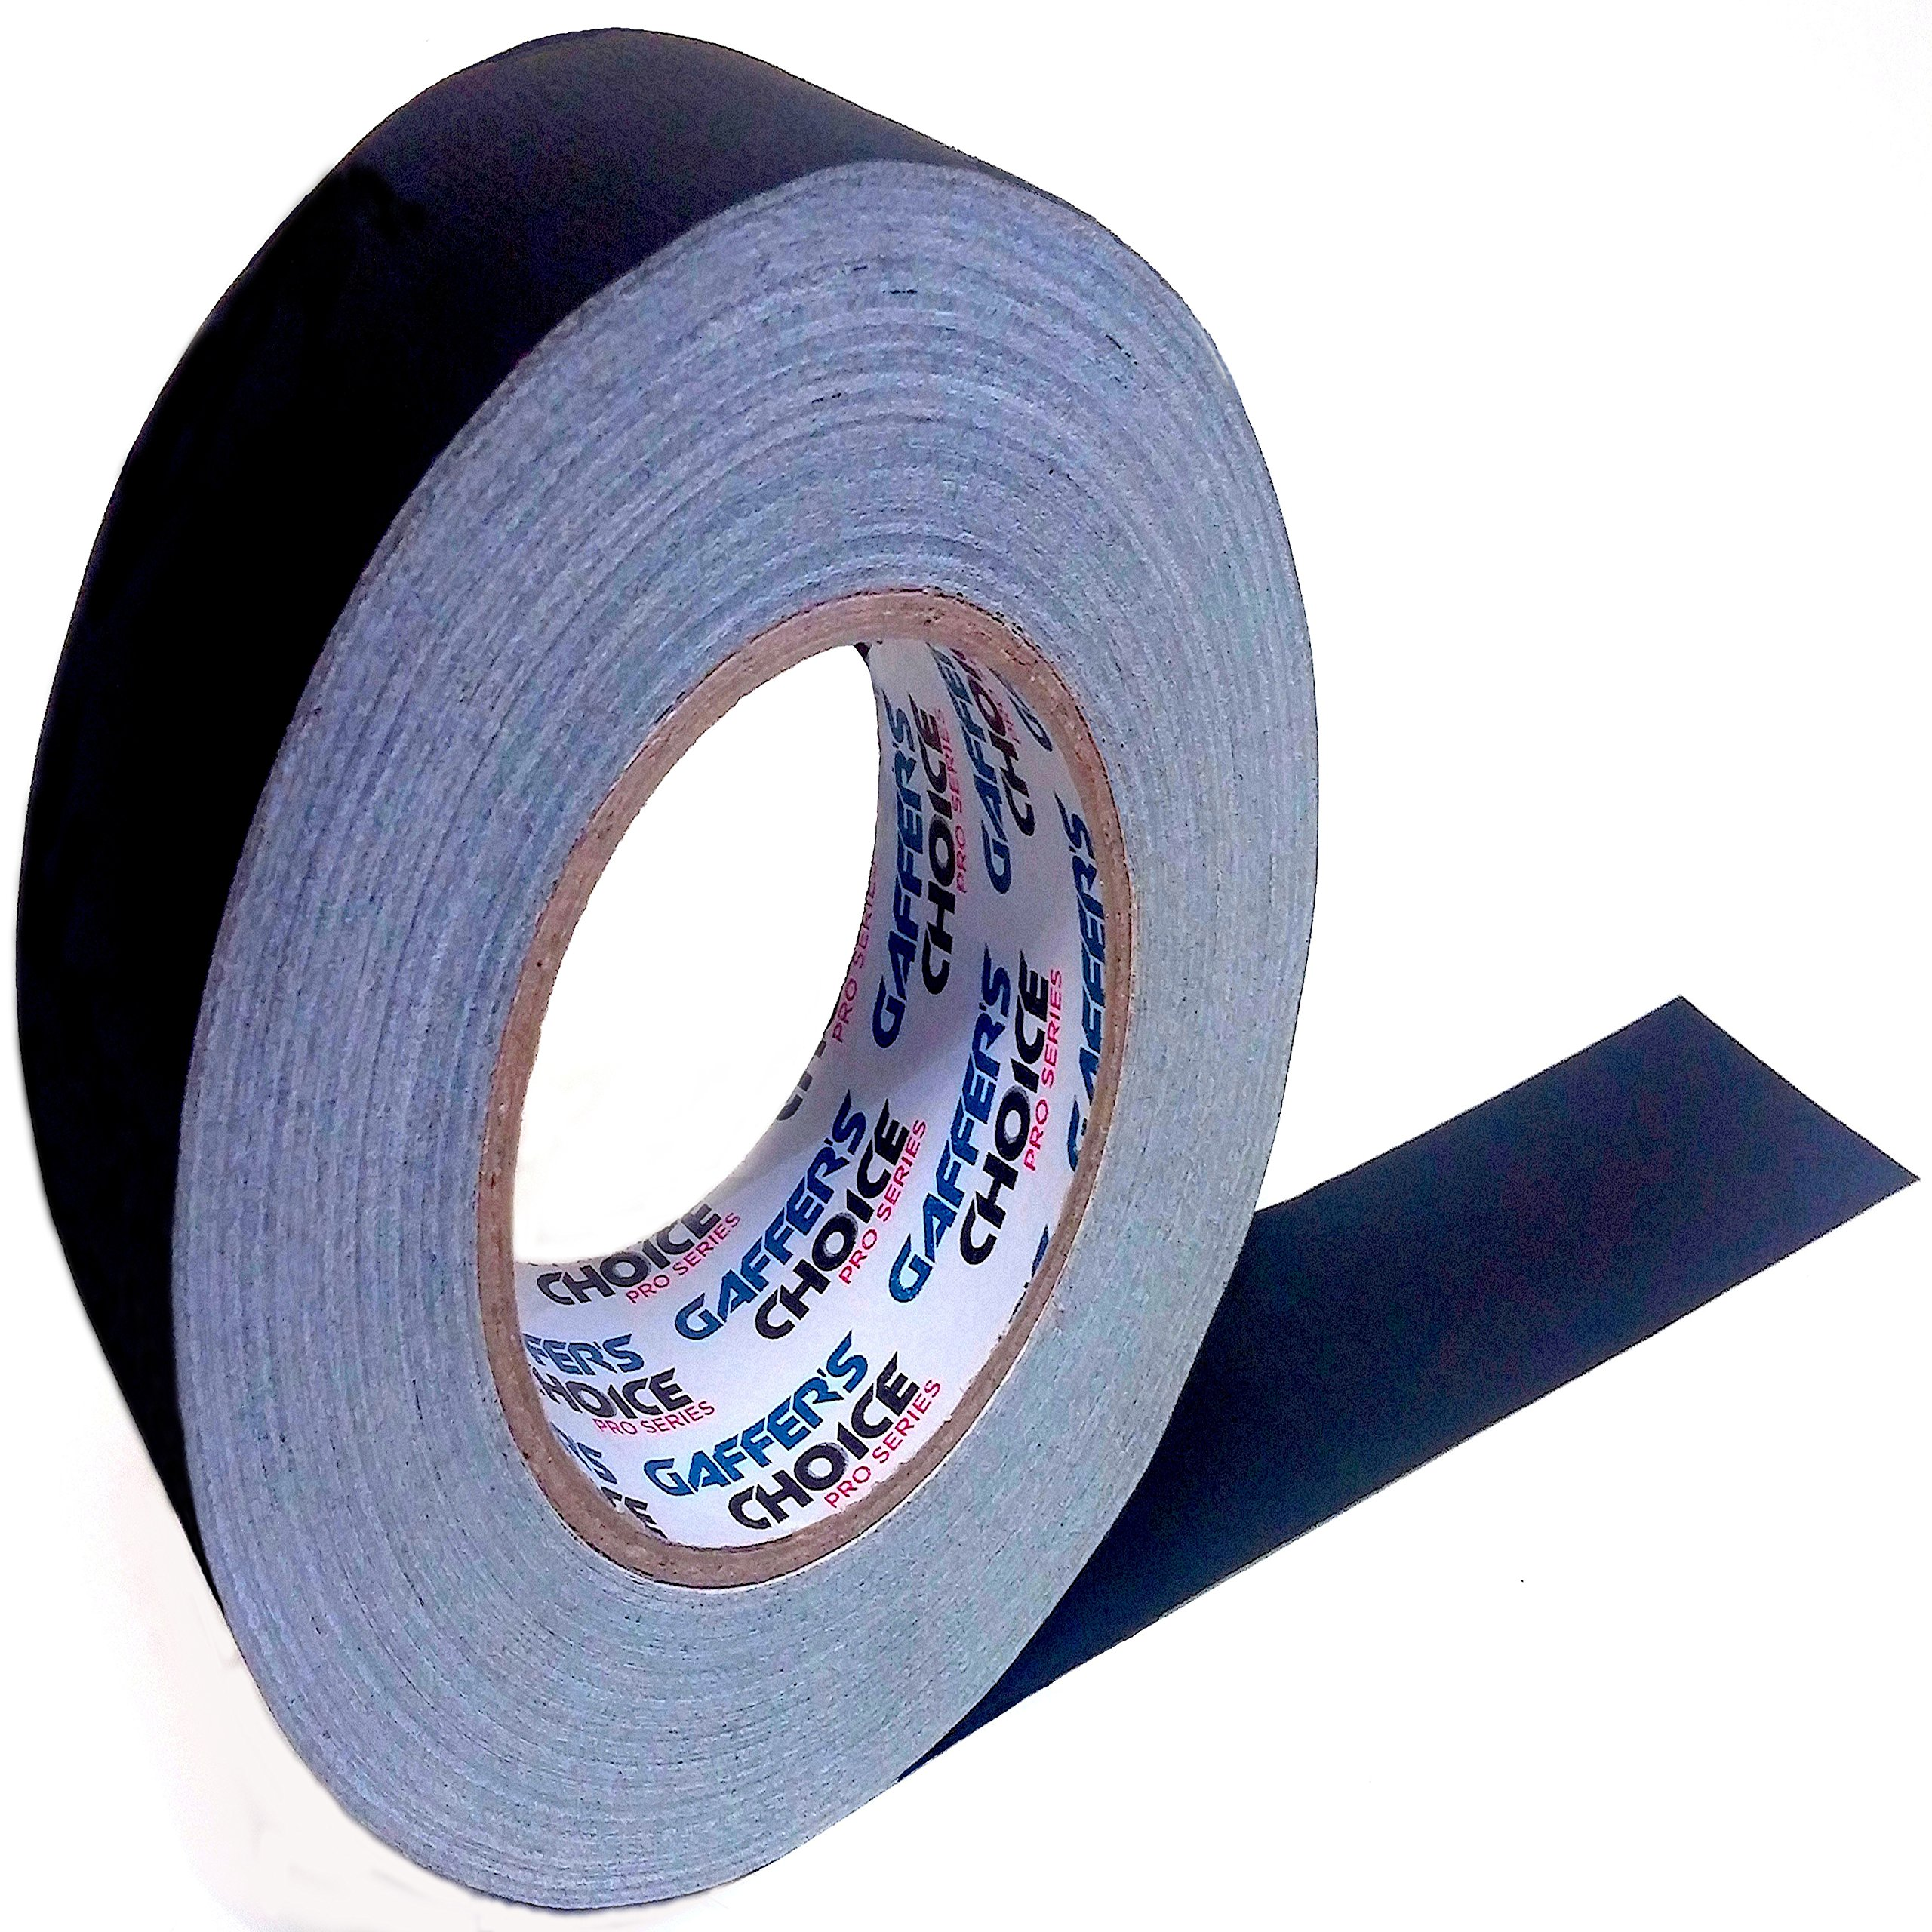 Gaffer Tape Gaffer's Choice - 2in. x 60yd - Black - Adhesive Is Safer Than Duct Tape - Waterproof & Non-Reflective Multipurpose Gaffer Tape